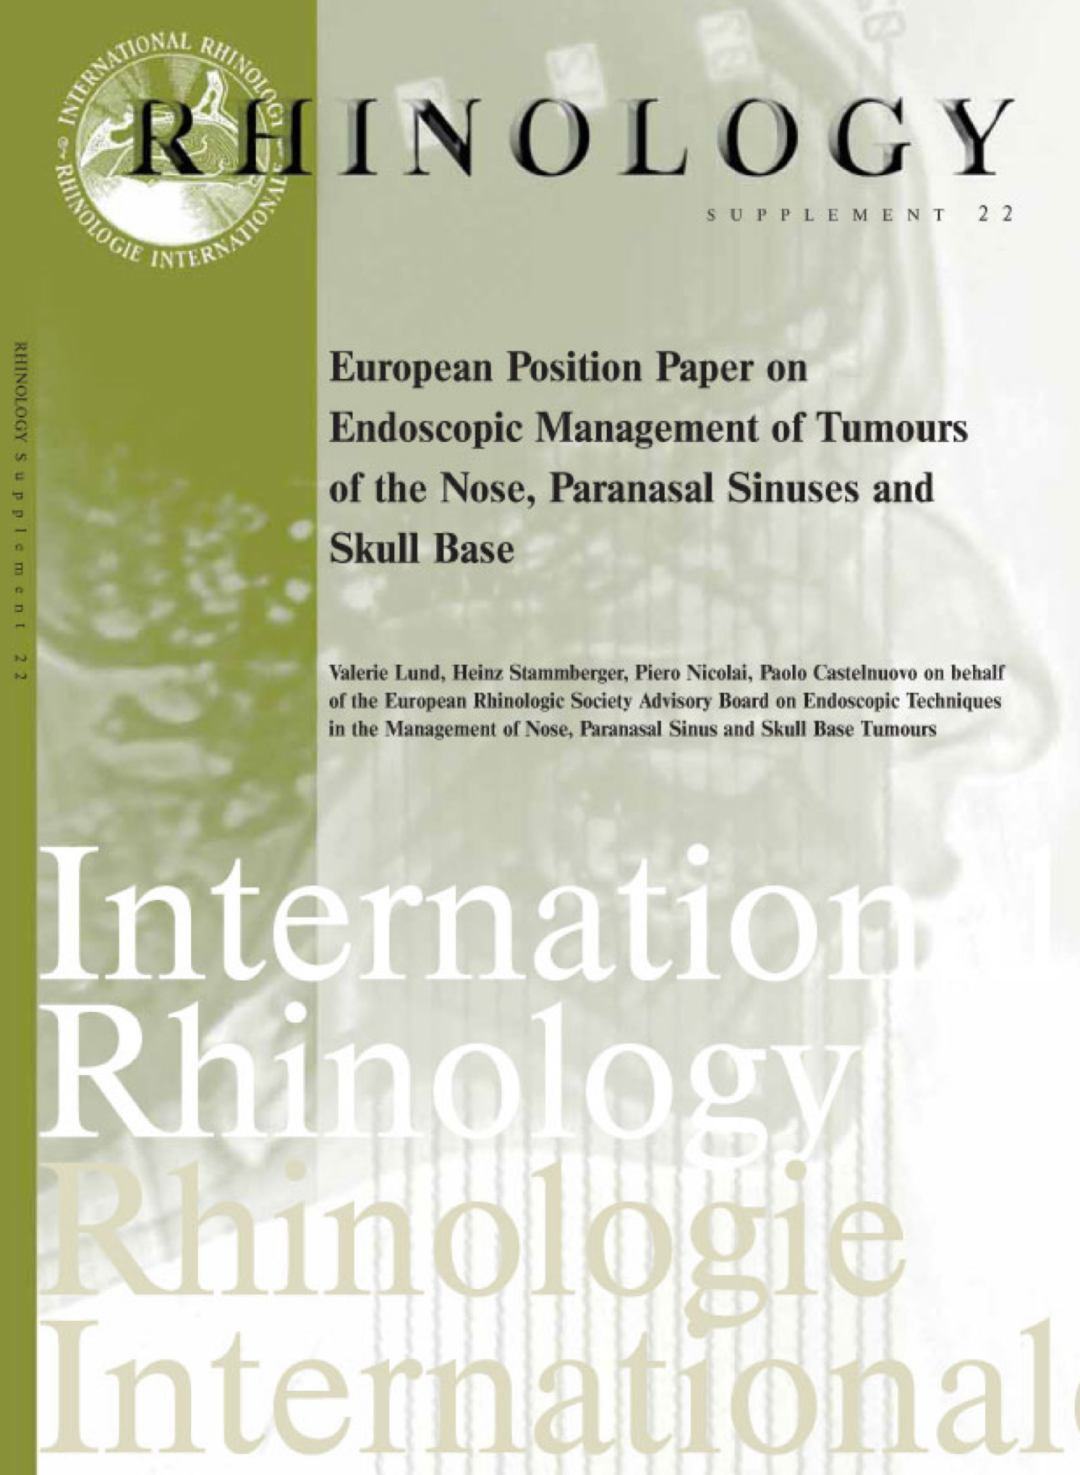 European position paper on endoscopic management of tumours of the nose paranasal sinuses and skull base